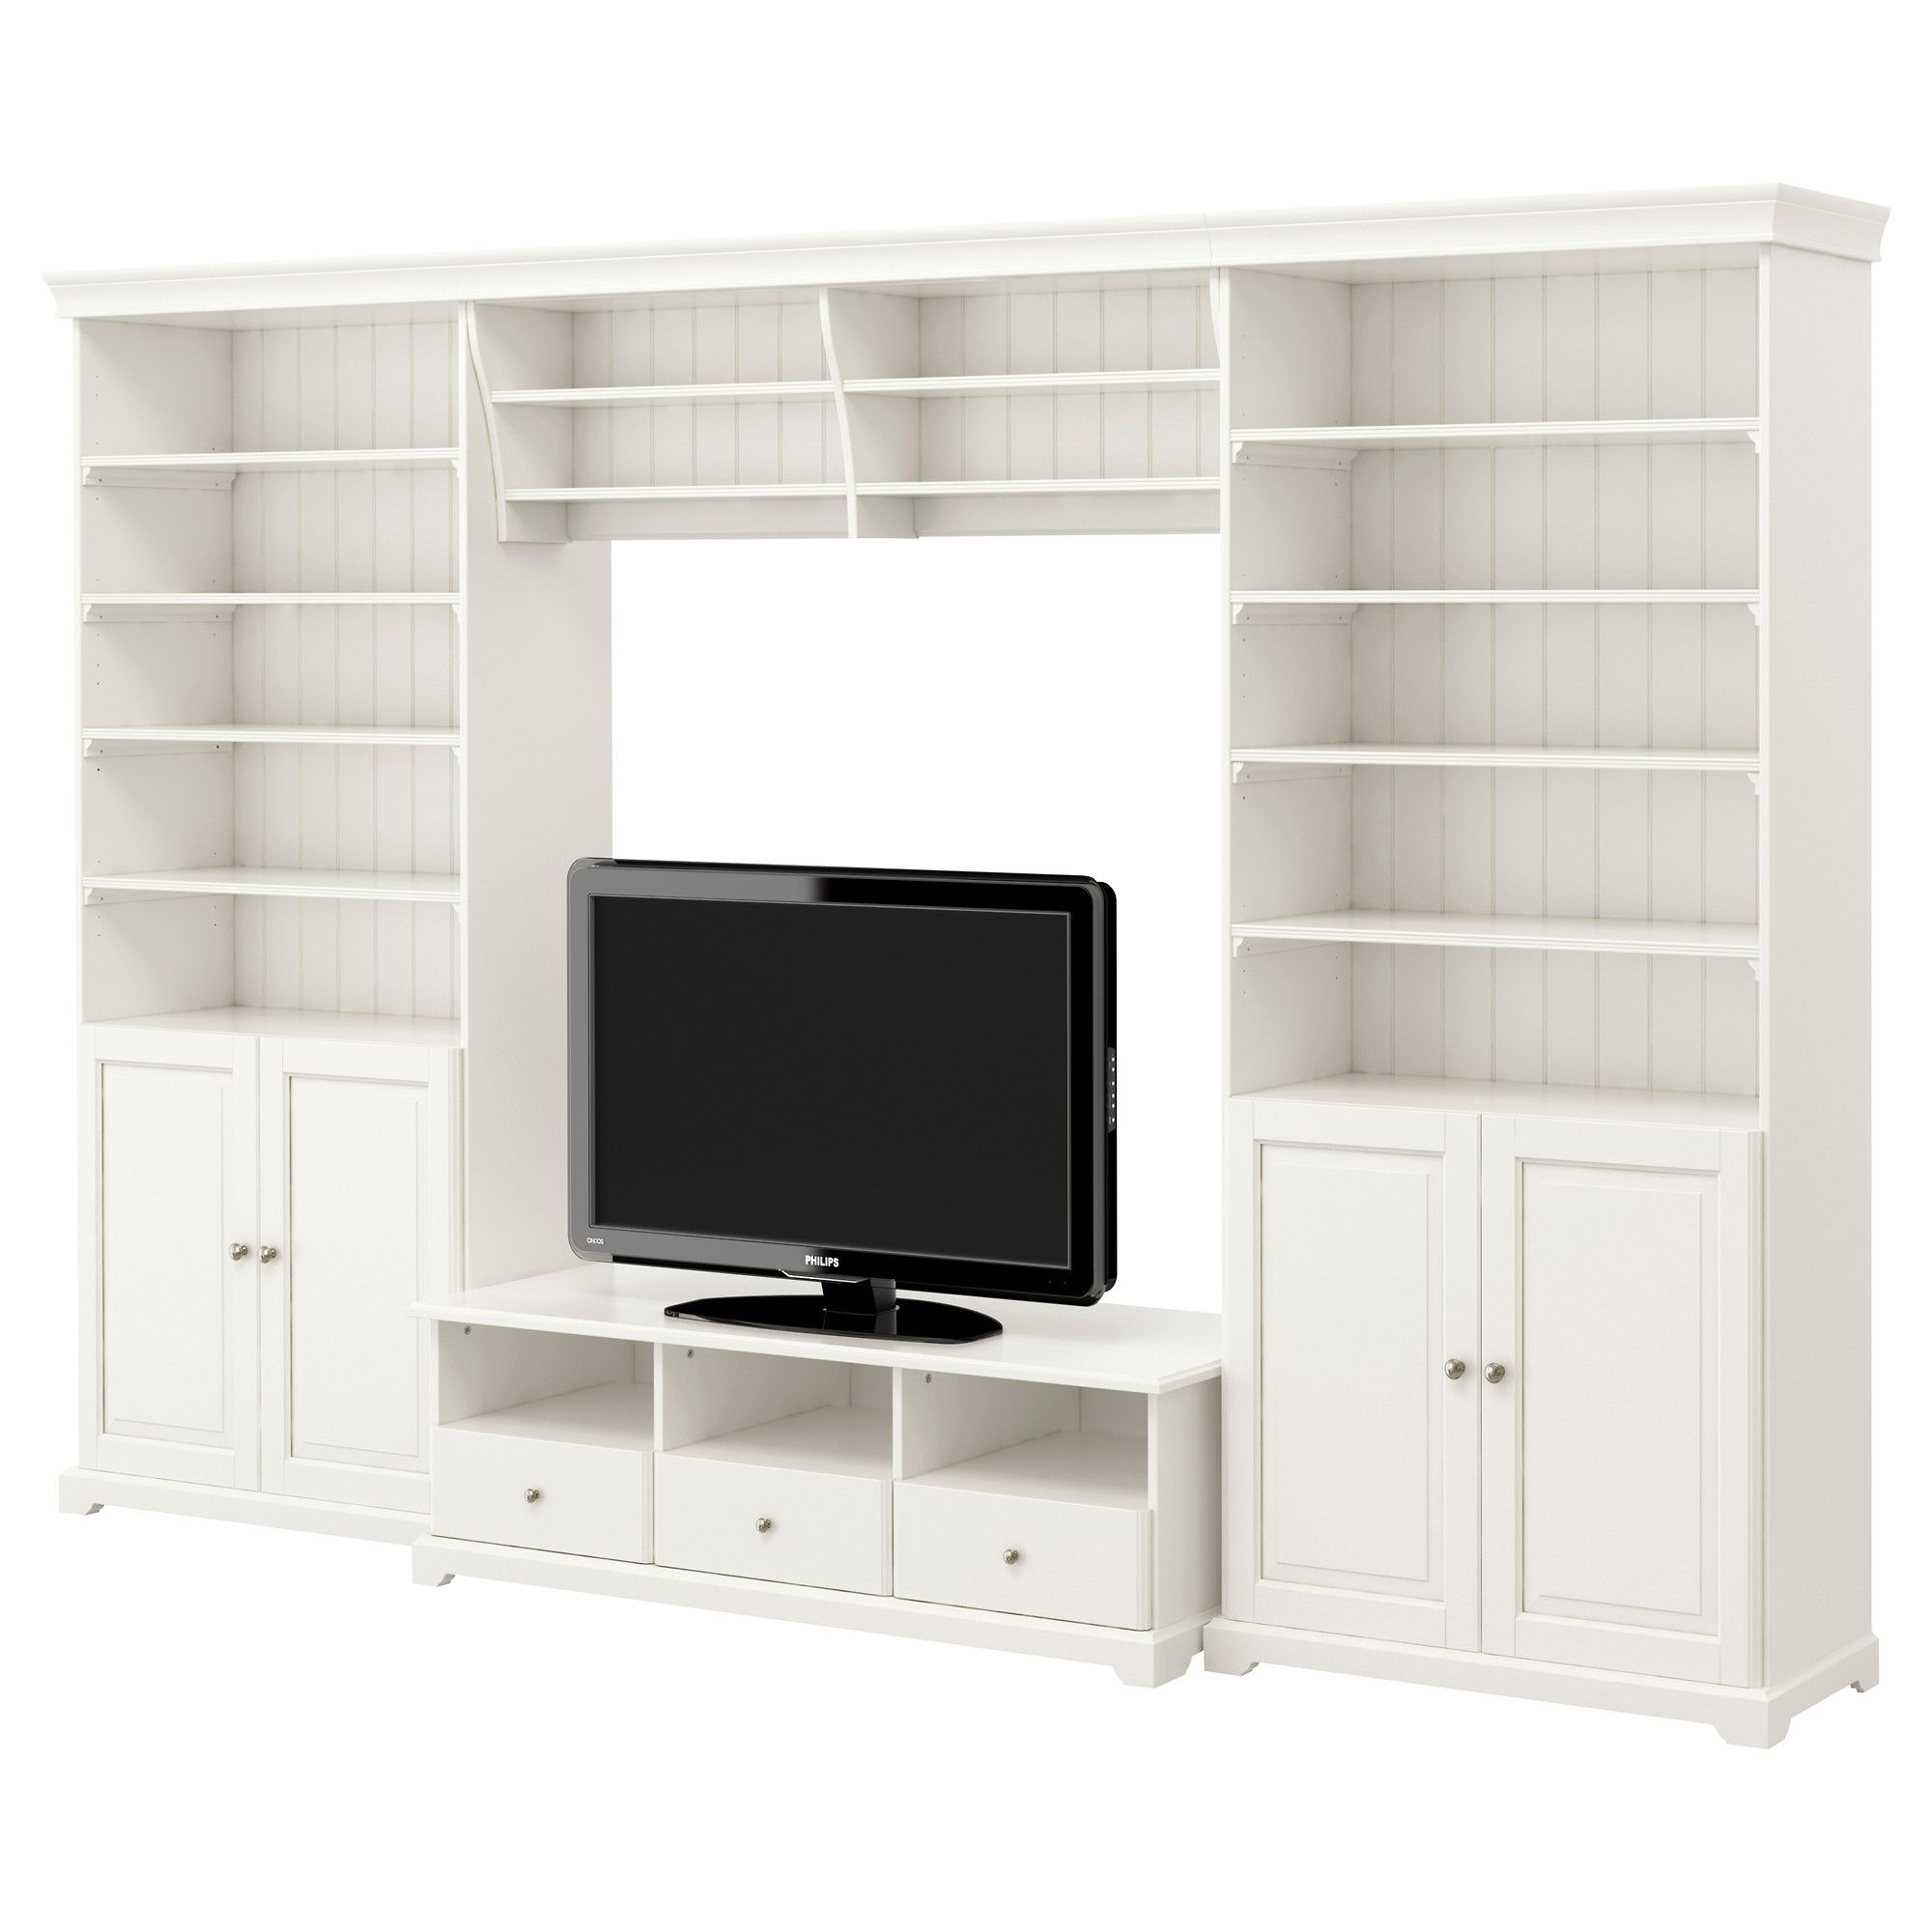 LIATORP Storage TV Bench